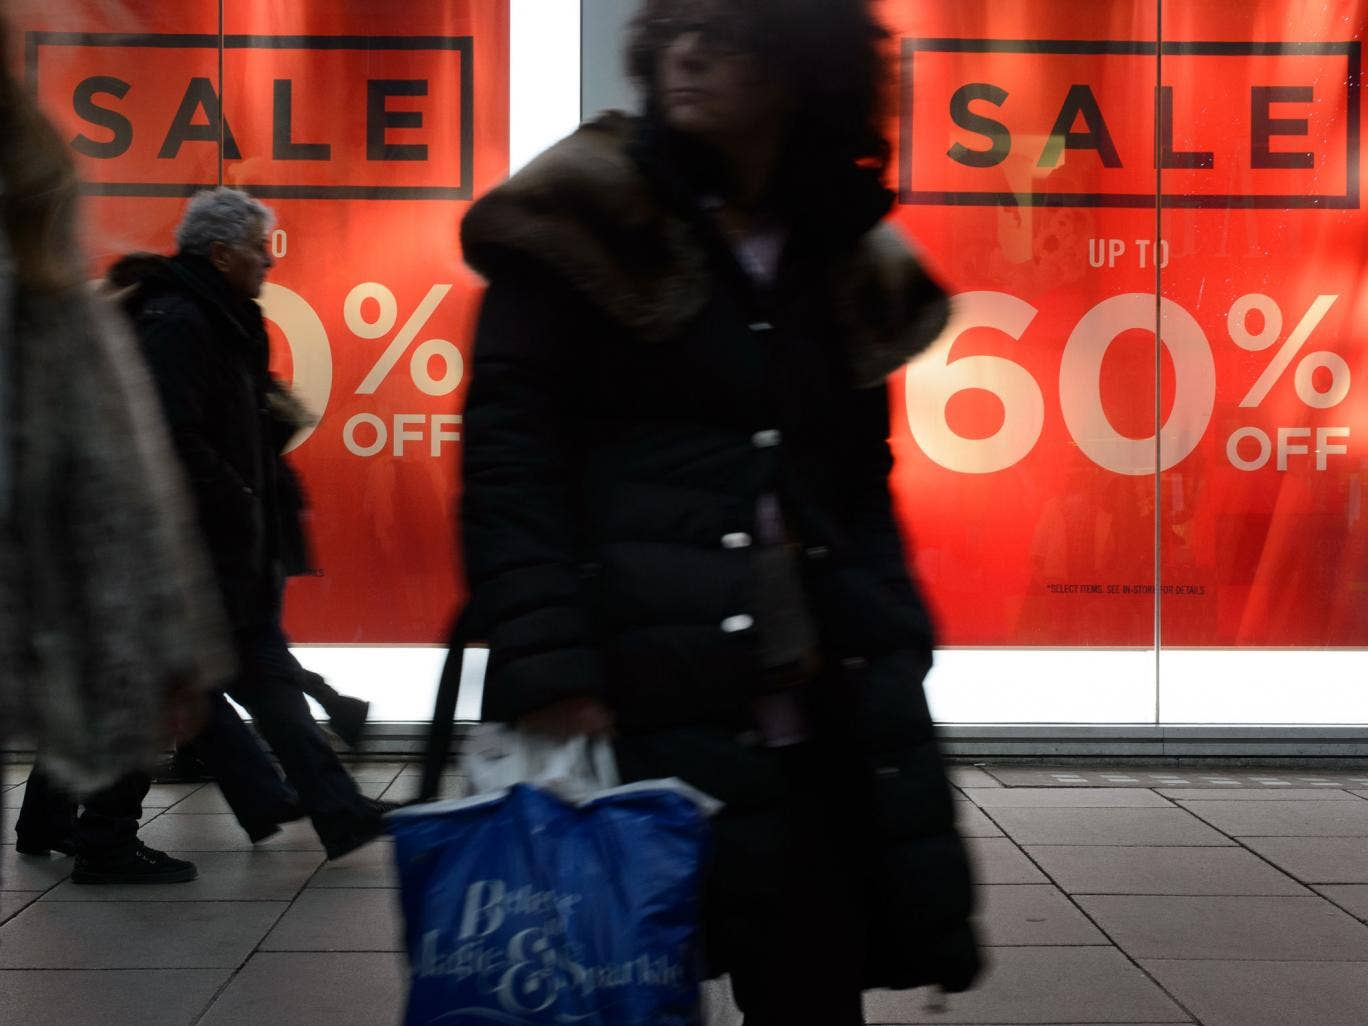 Retailers in the UK have panicked and slashed prices after an unexpectedly slow Christmas